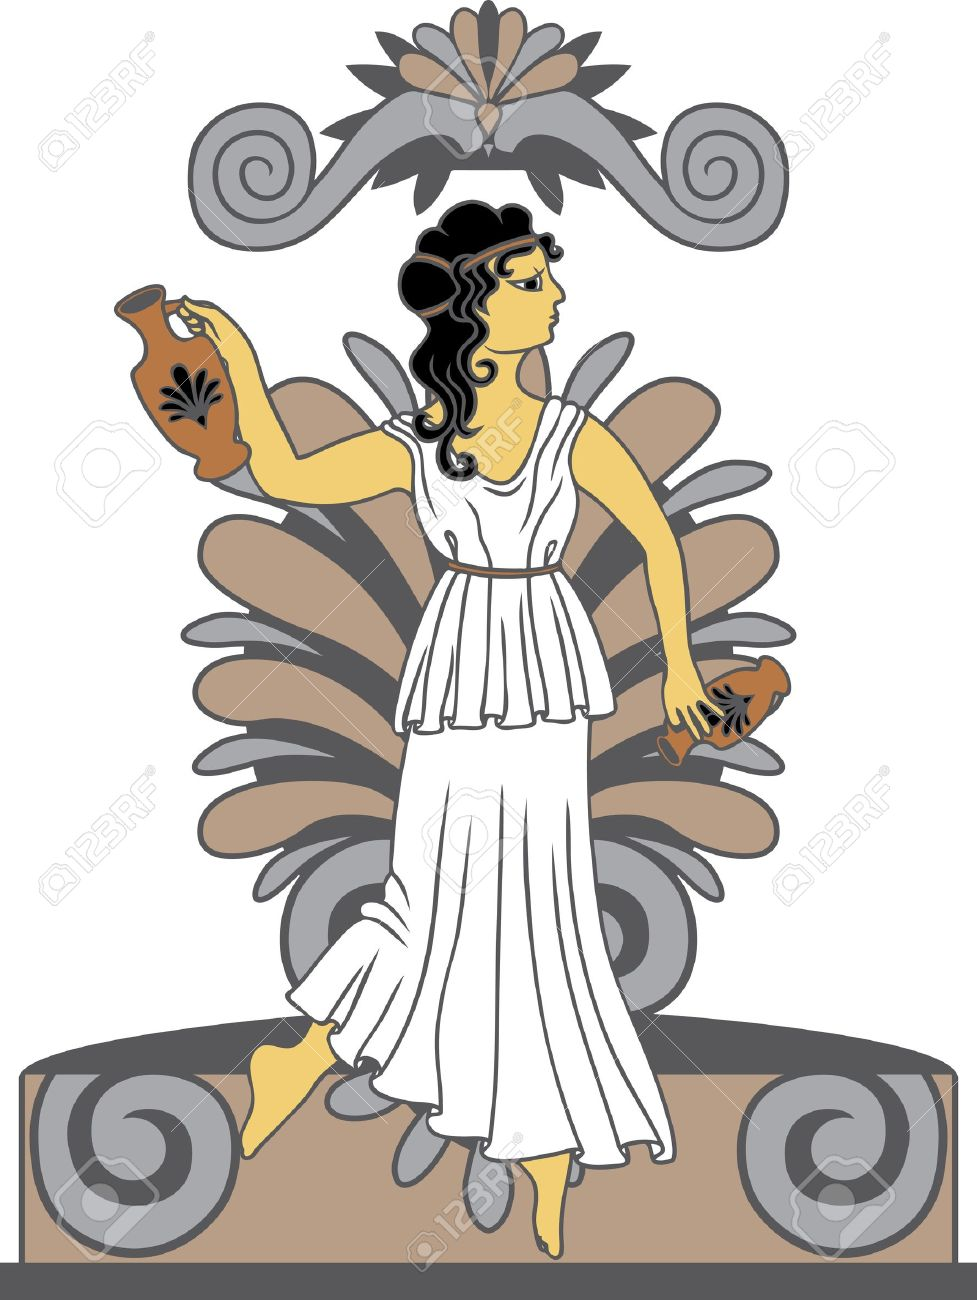 501 Roman Antiquities Cliparts, Stock Vector And Royalty Free.